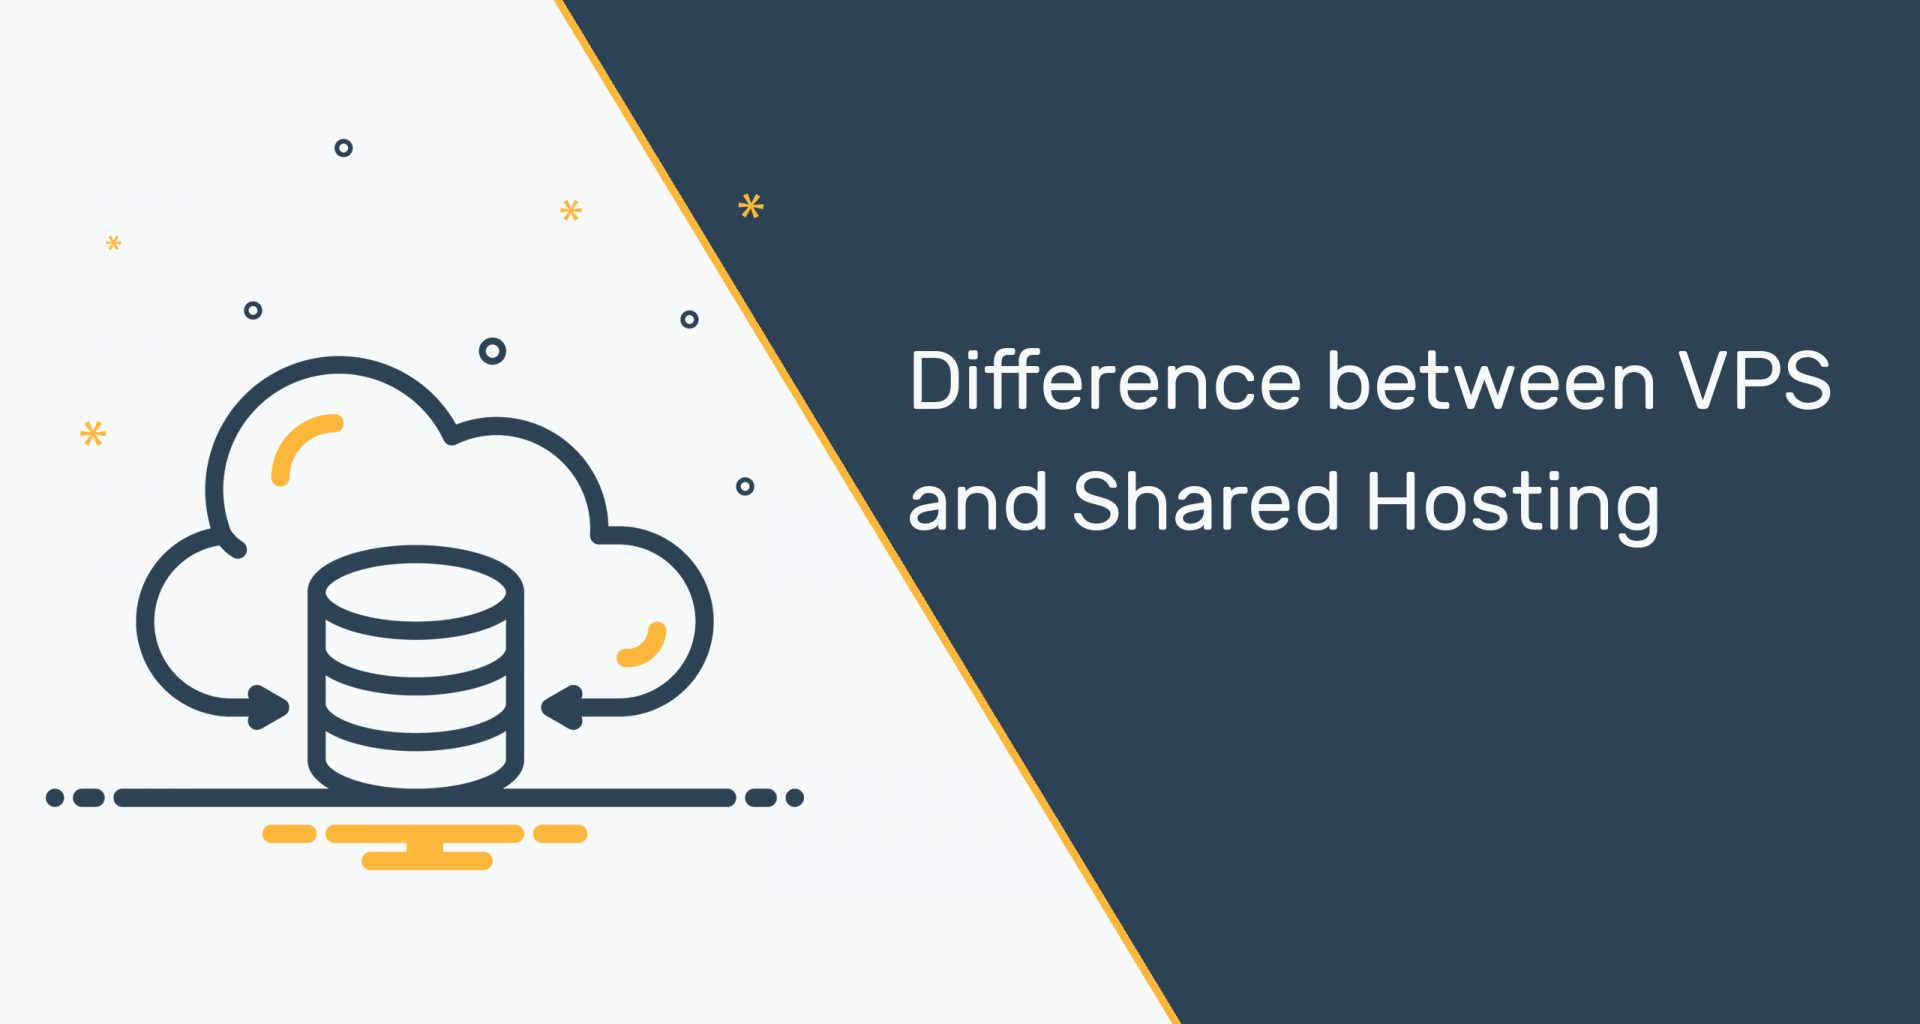 Difference between VPS and Shared Hosting